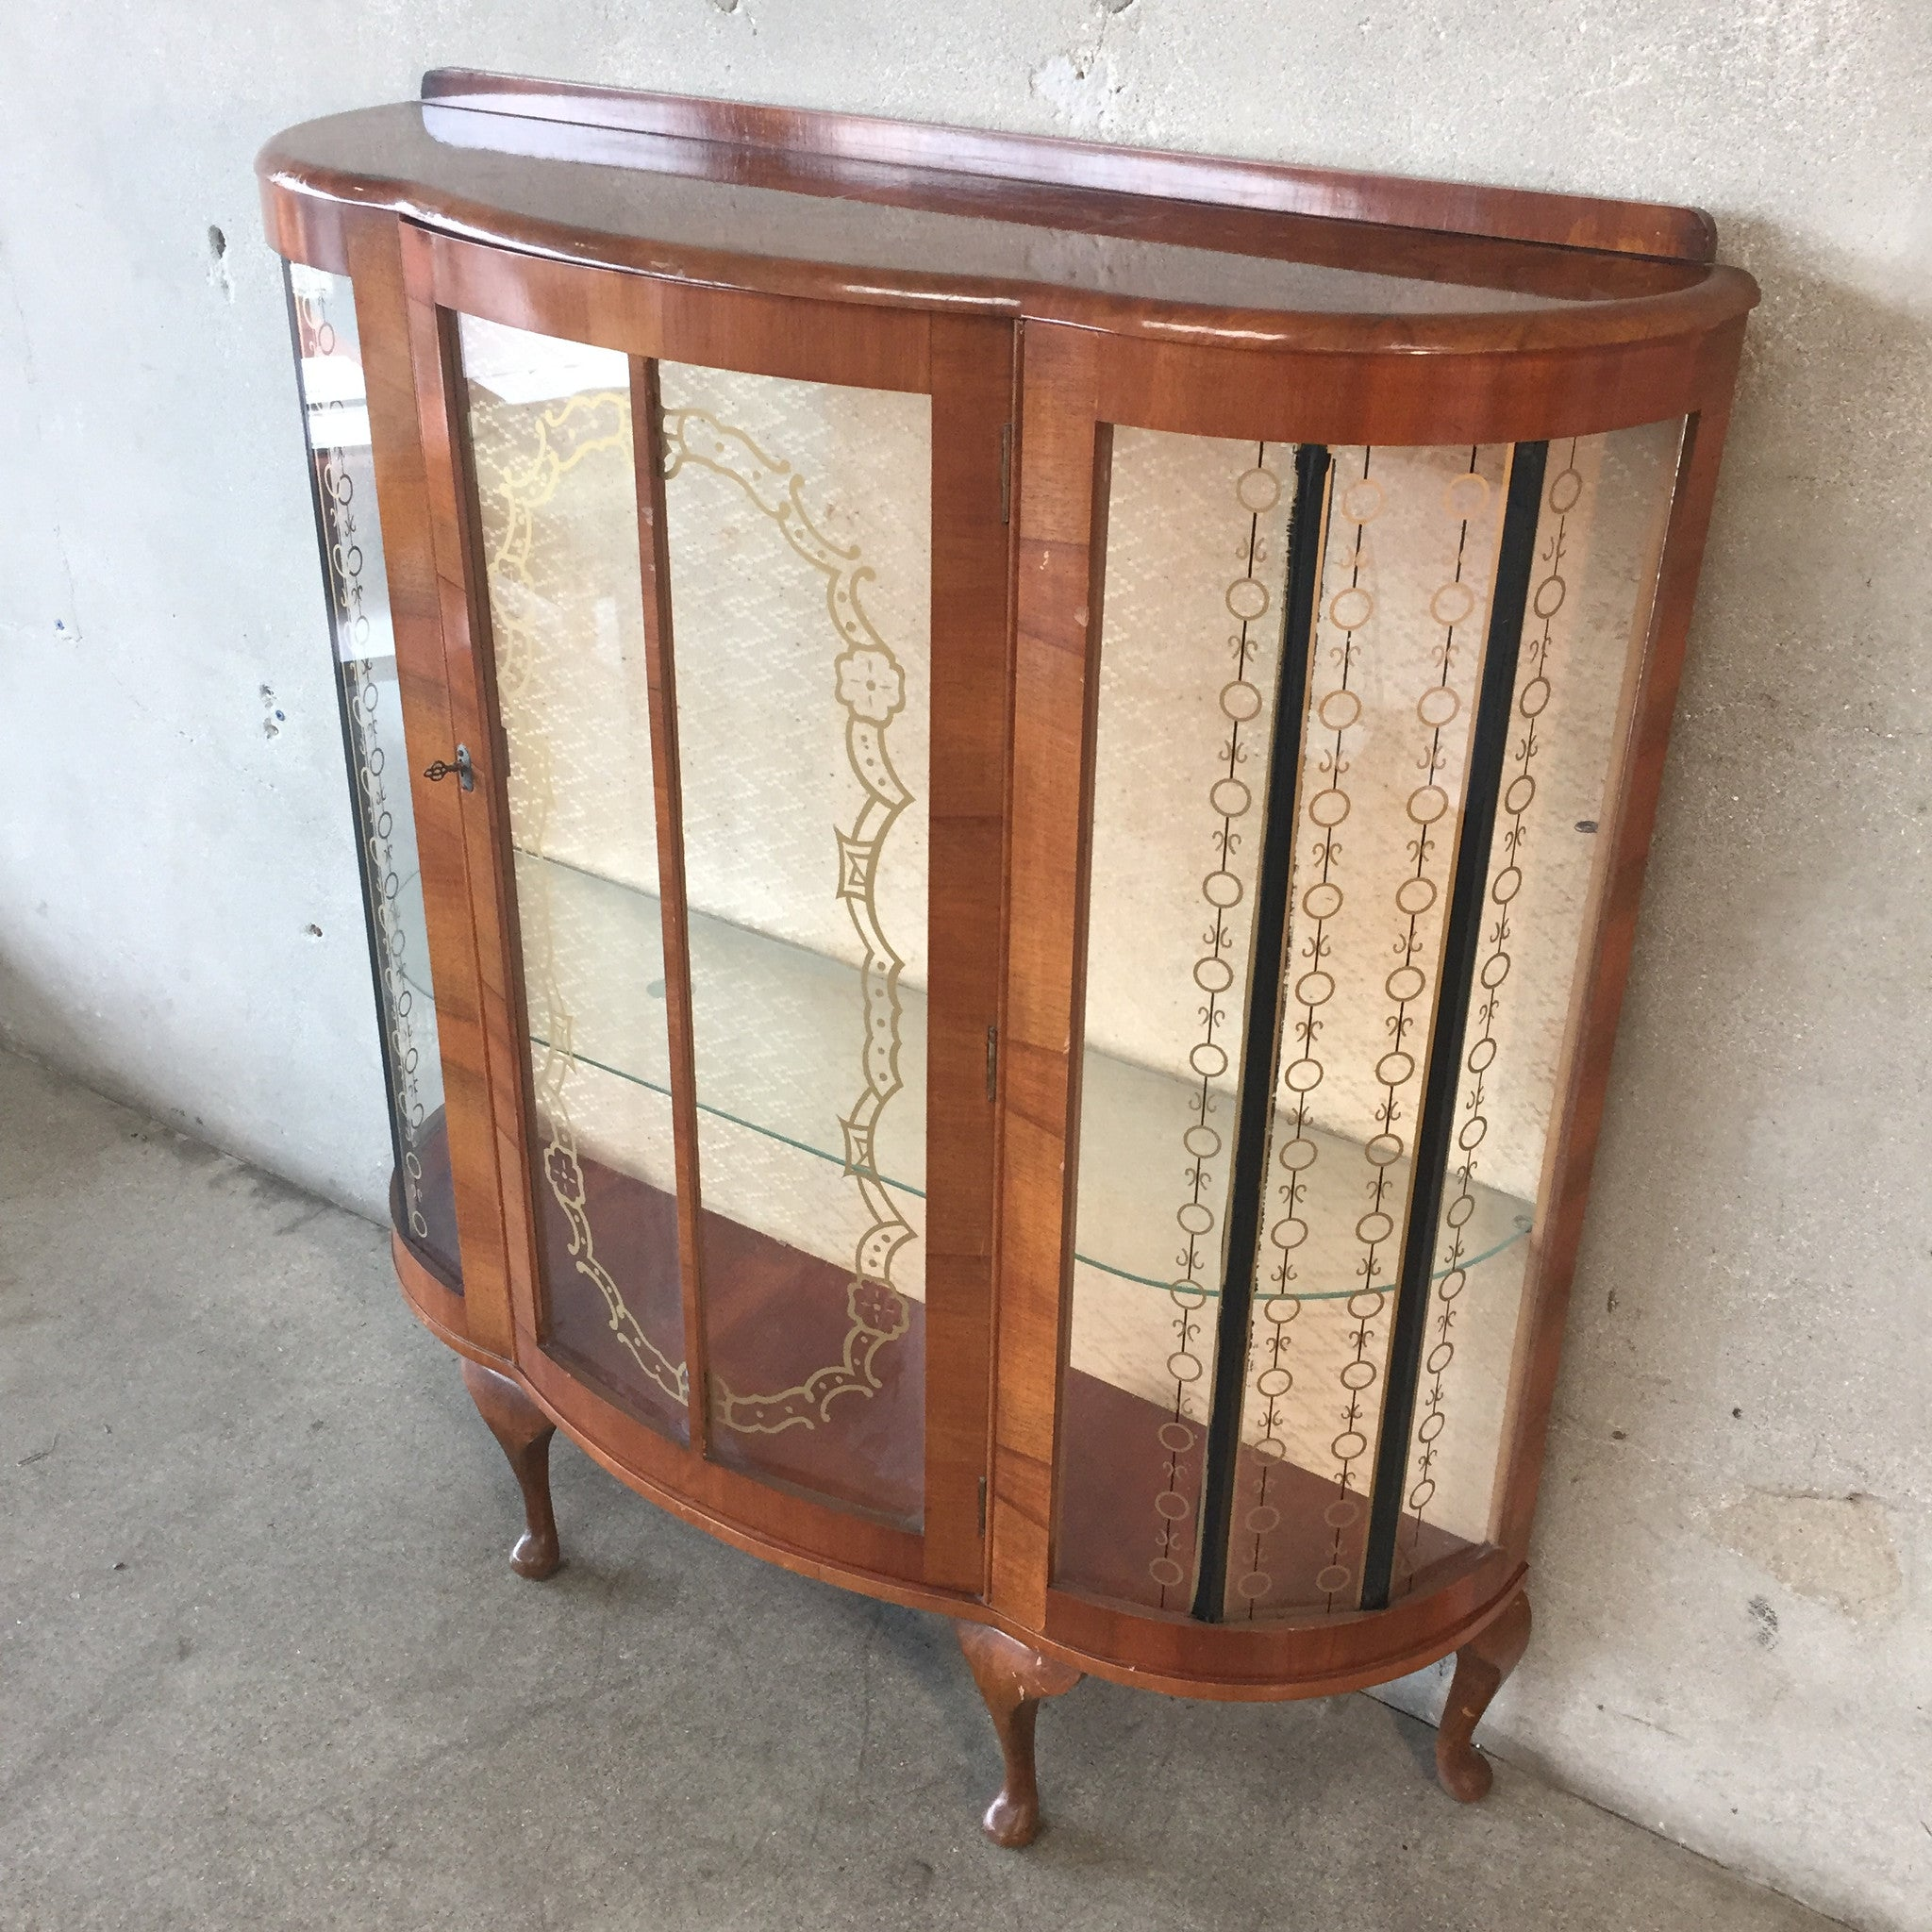 curio cabinets antique curved glass cabinets matttroy. Black Bedroom Furniture Sets. Home Design Ideas